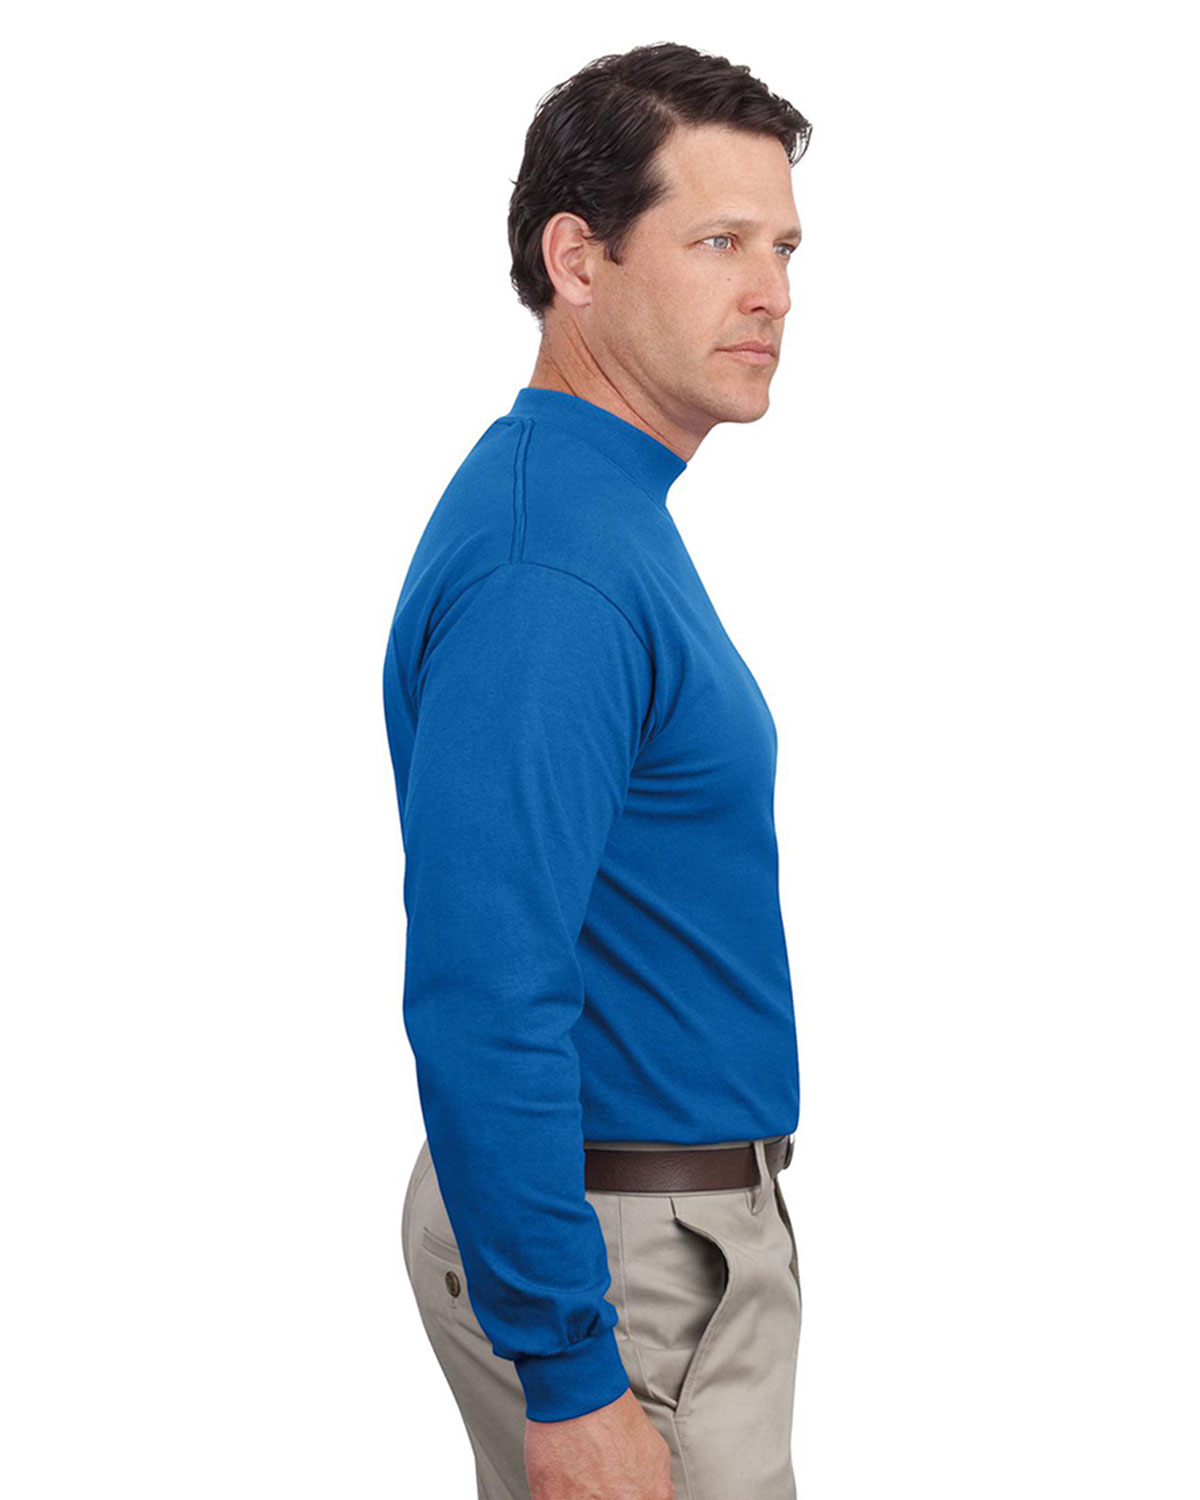 Mens Mock Turtleneck At Big And Tall Apparel Store